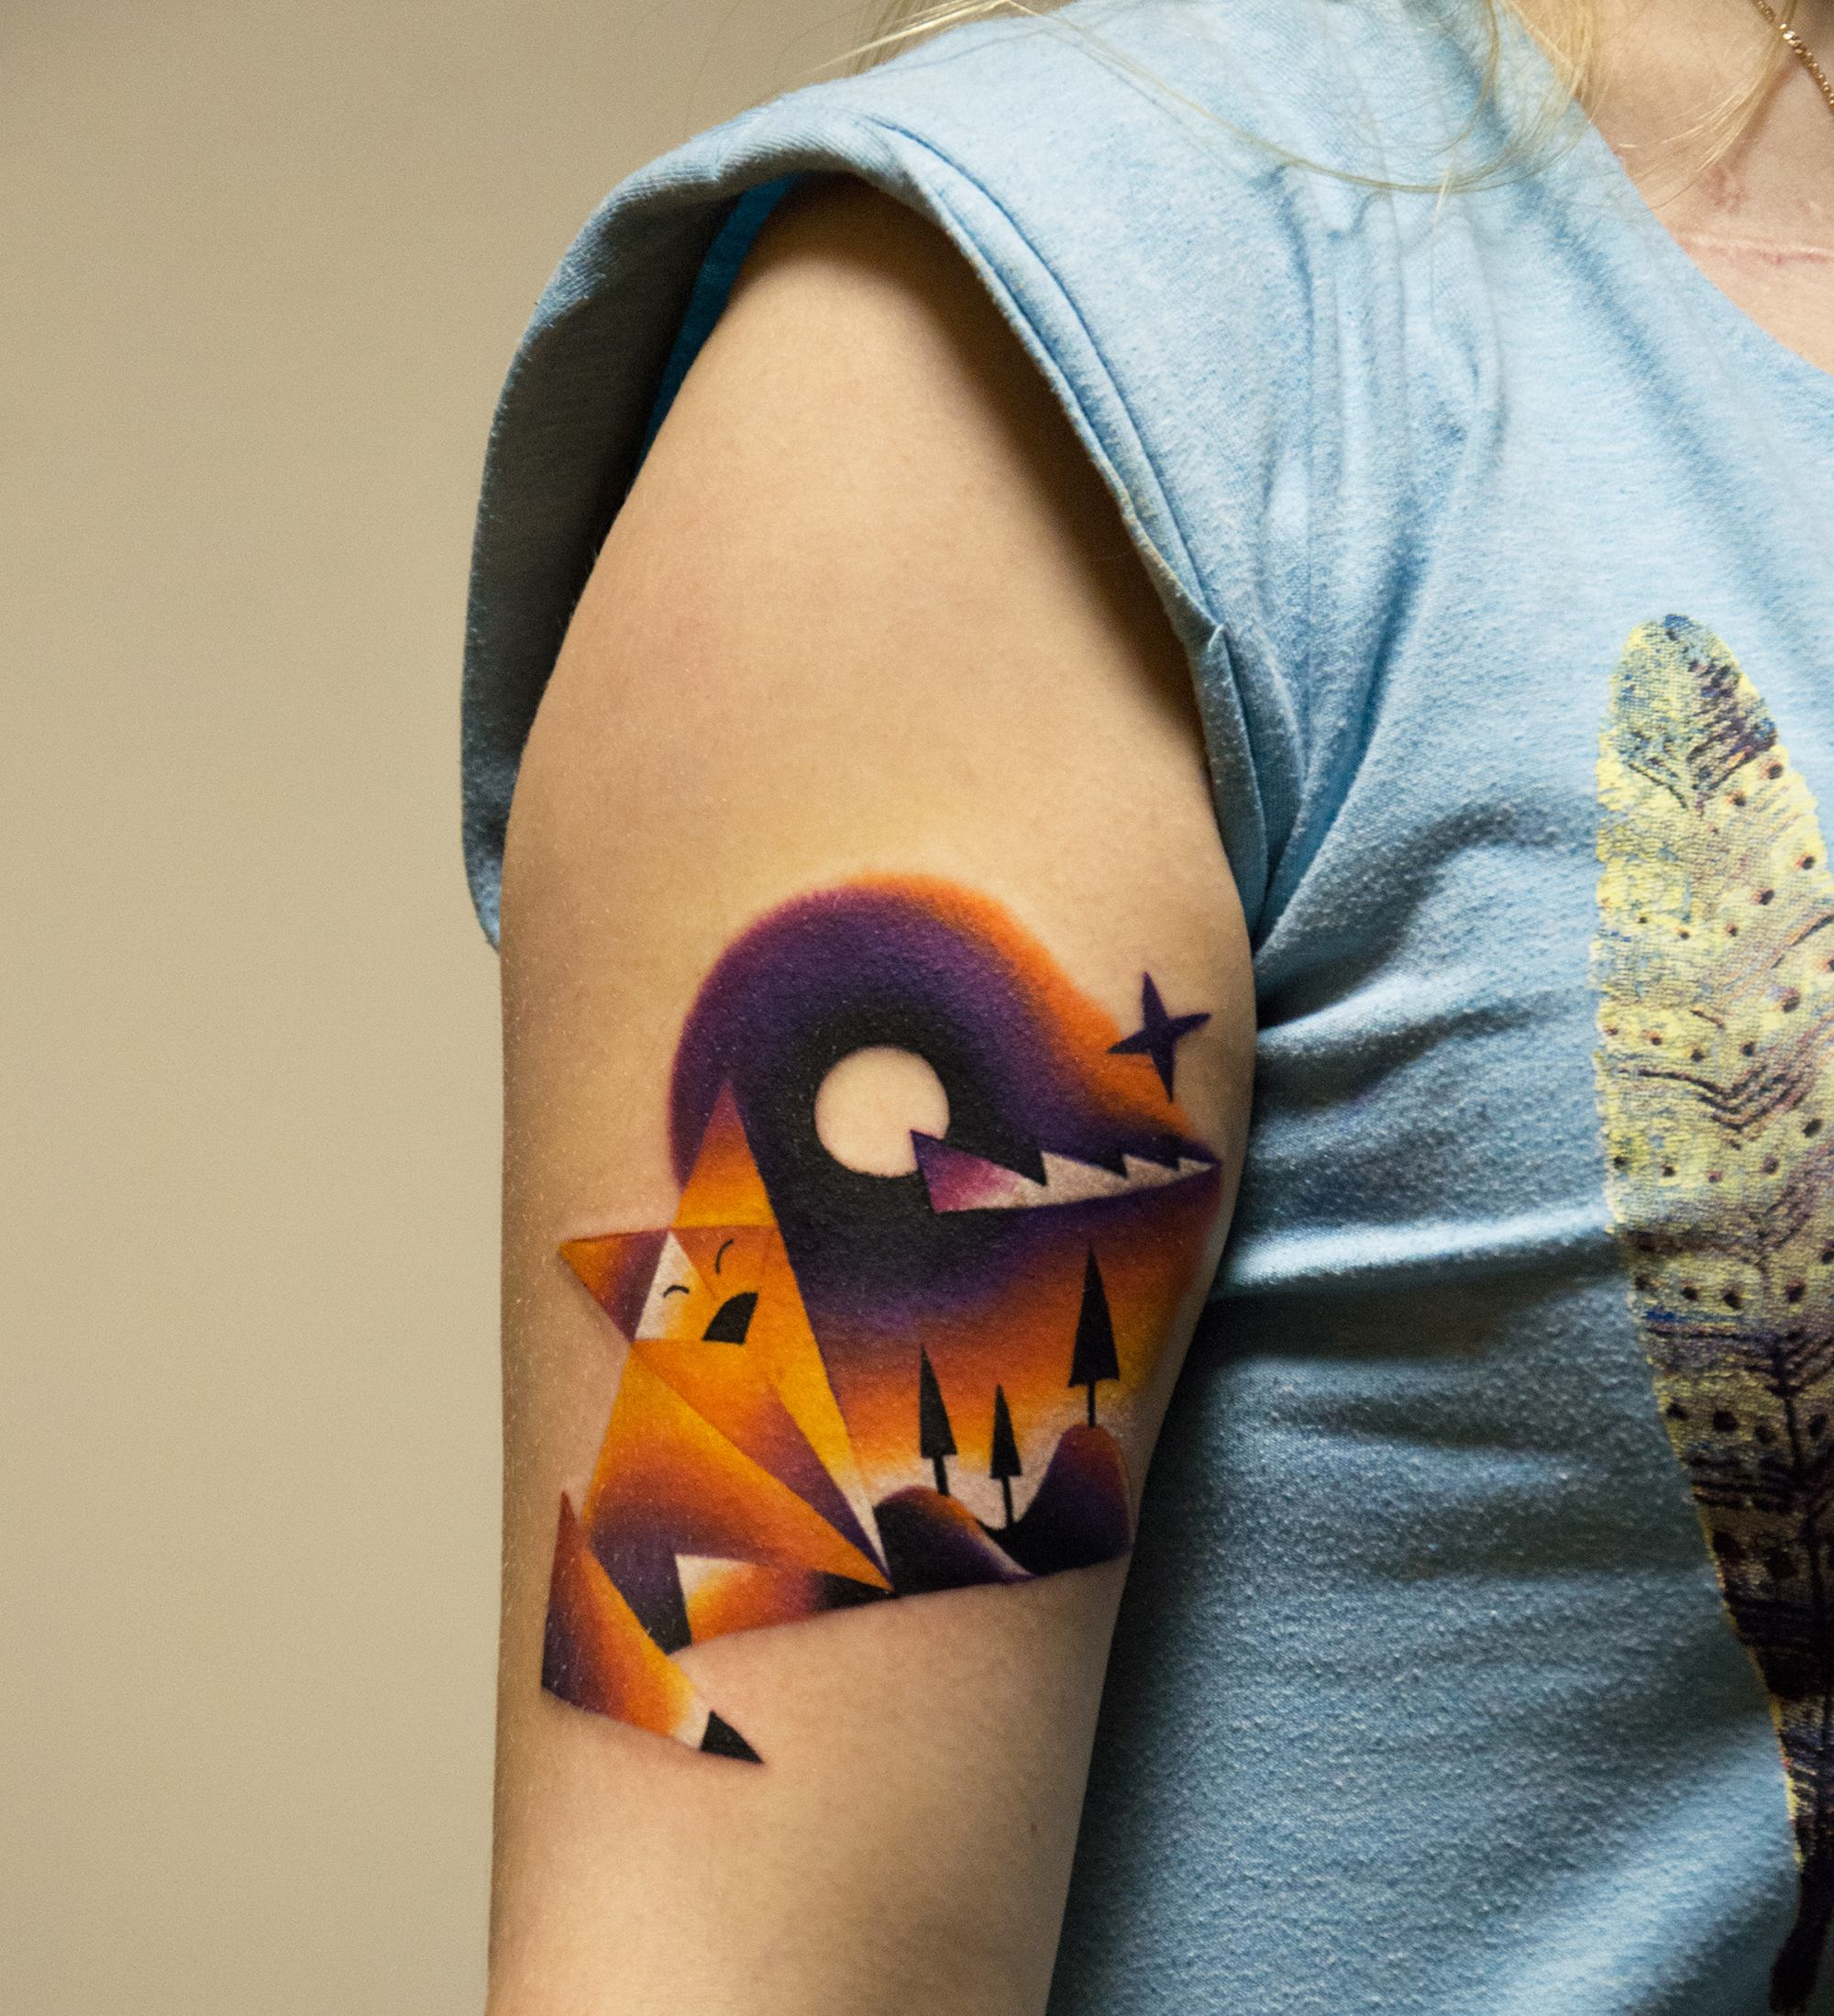 Tattoo on arm, Polypictures Illustration by Anton Mikhalenkov